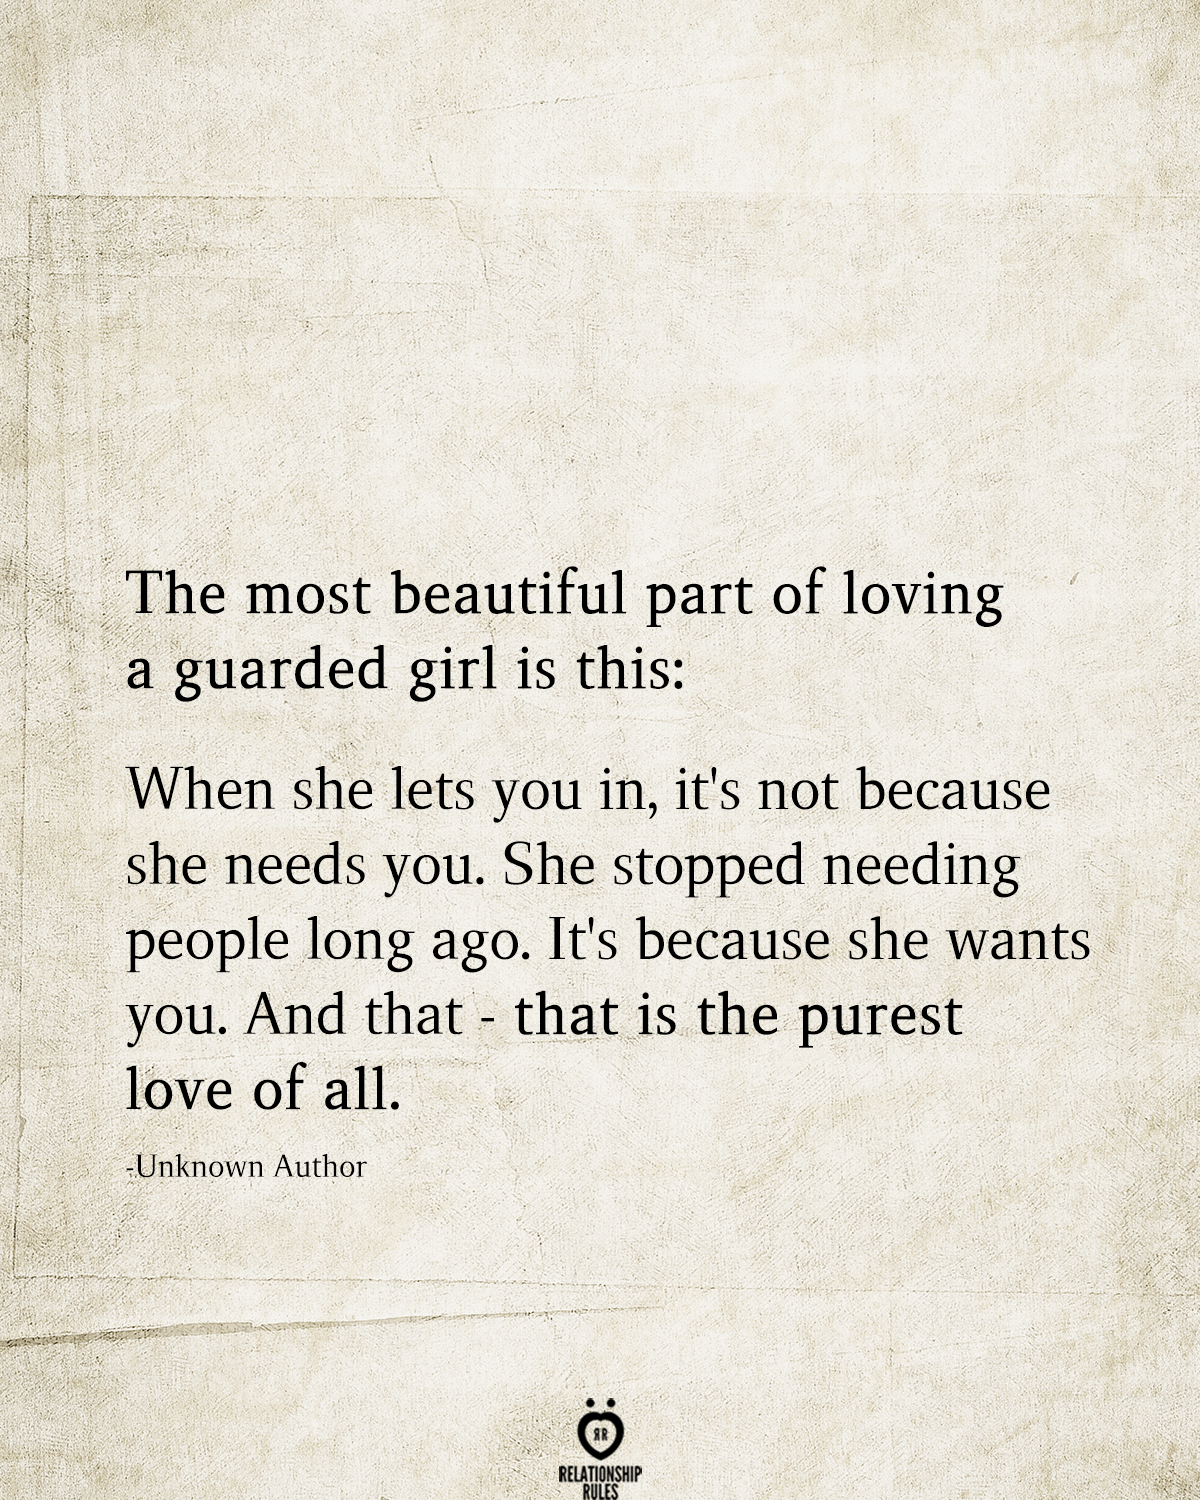 The Most Beautiful Part Of Loving A Guarded Girl Is This